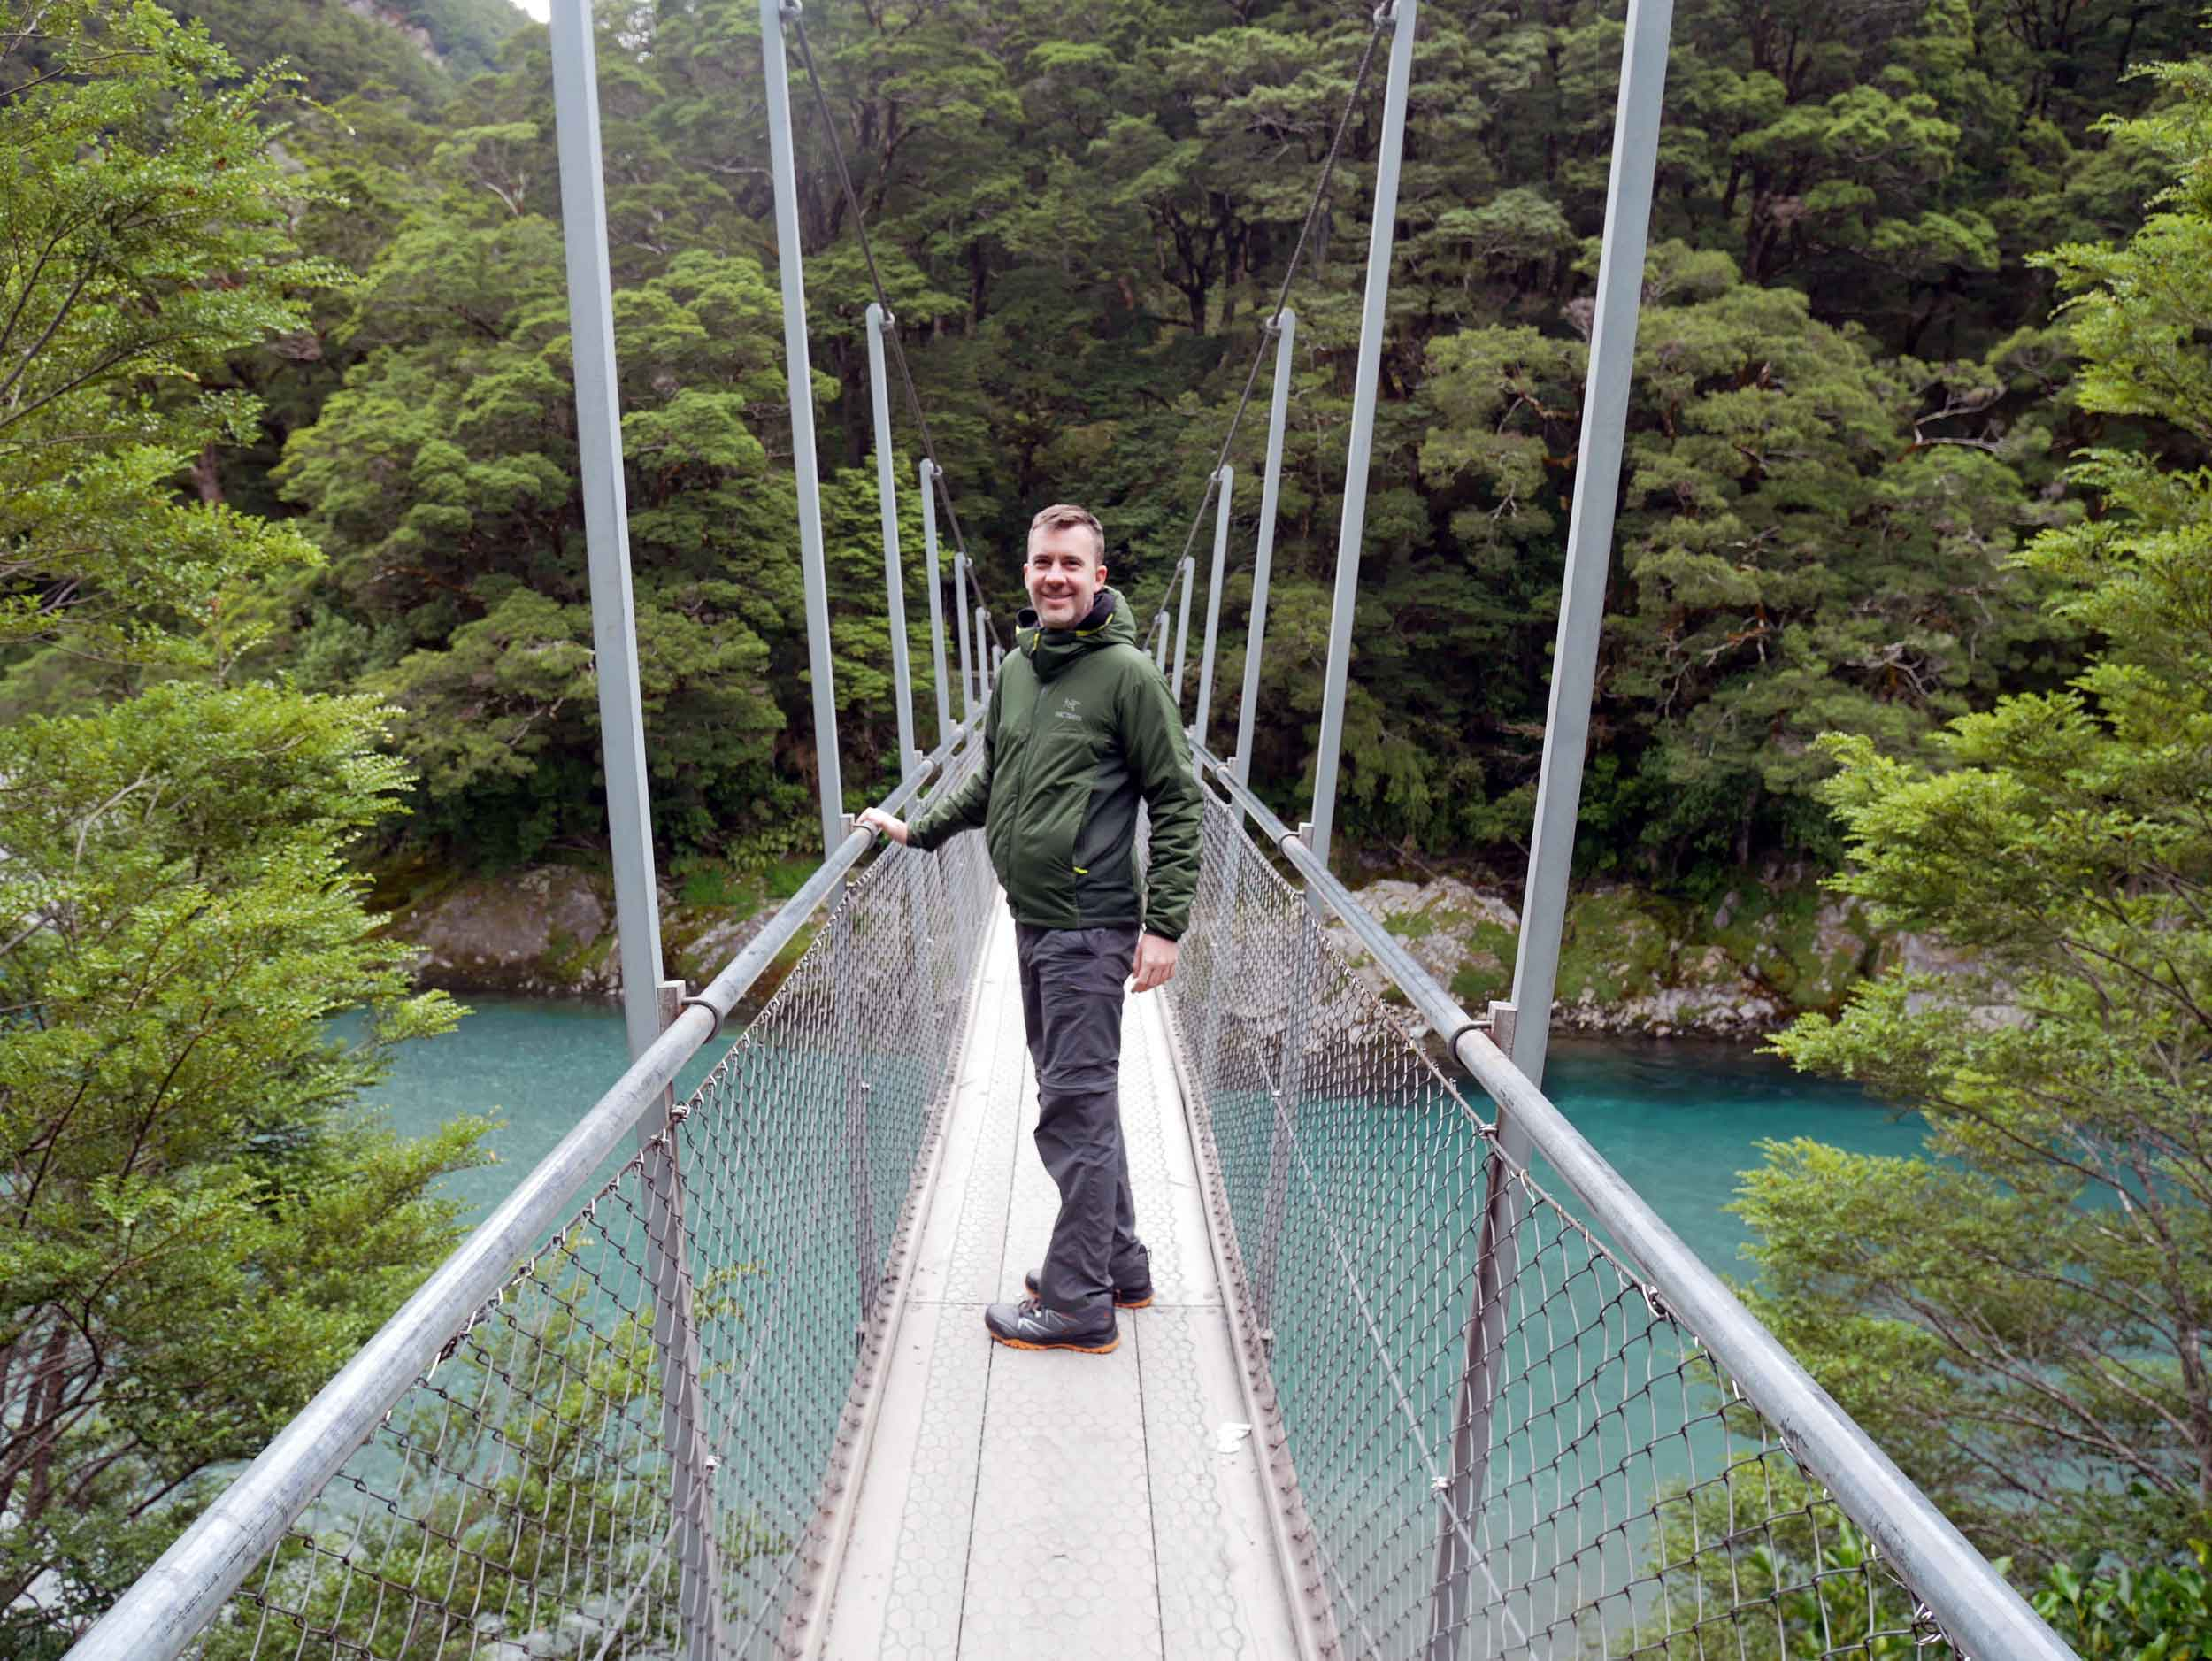 The Hokitika Gorge features ice blue water and a famous swing bridge (Jan 5).